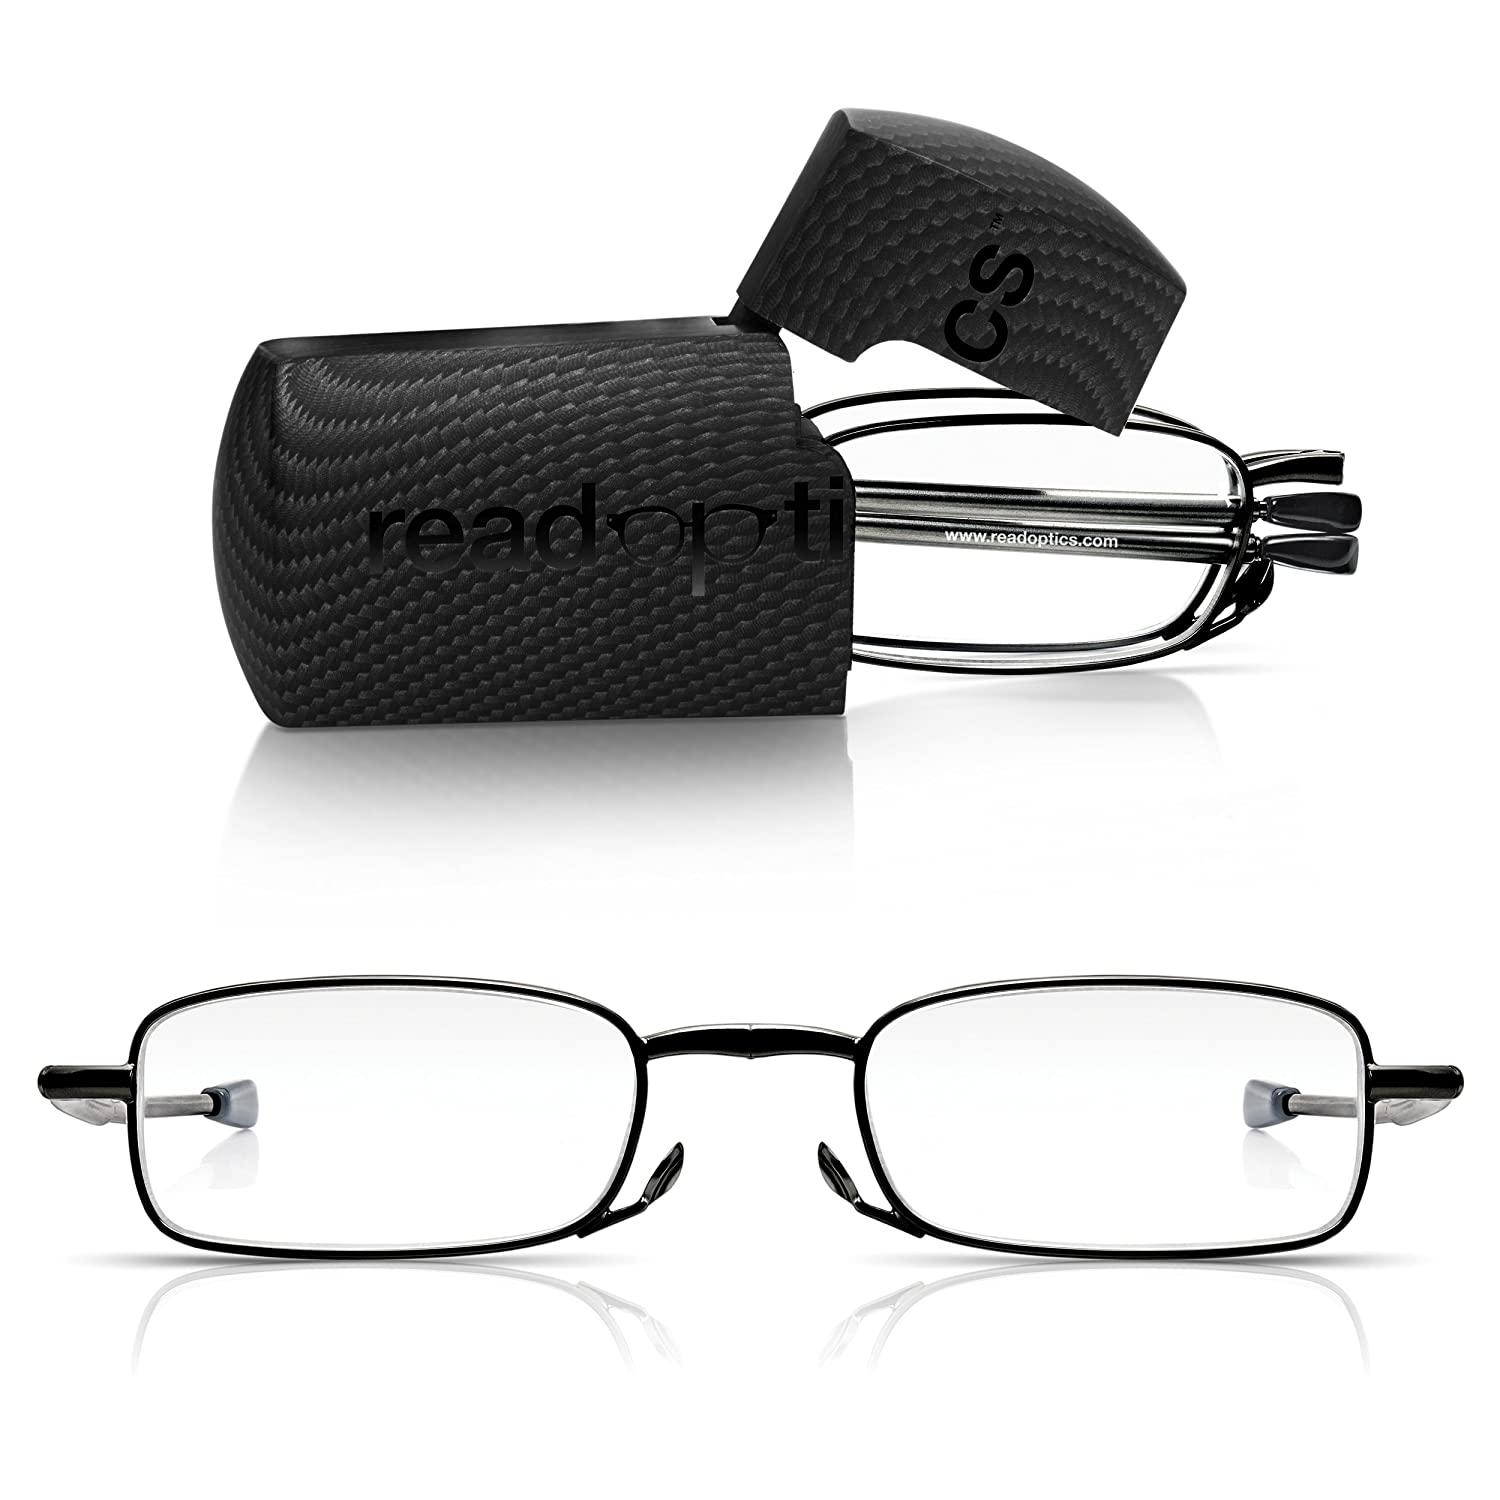 Read Optics Folding Glasses: Mens/Womens Durable Fold-Away Compact Ready Readers With Pocket Hard Case, Foldable Metal Frame, Slim Telescopic Arms, Optical Quality Lenses +1/1.50/2/ 2.5/3/ 3.5